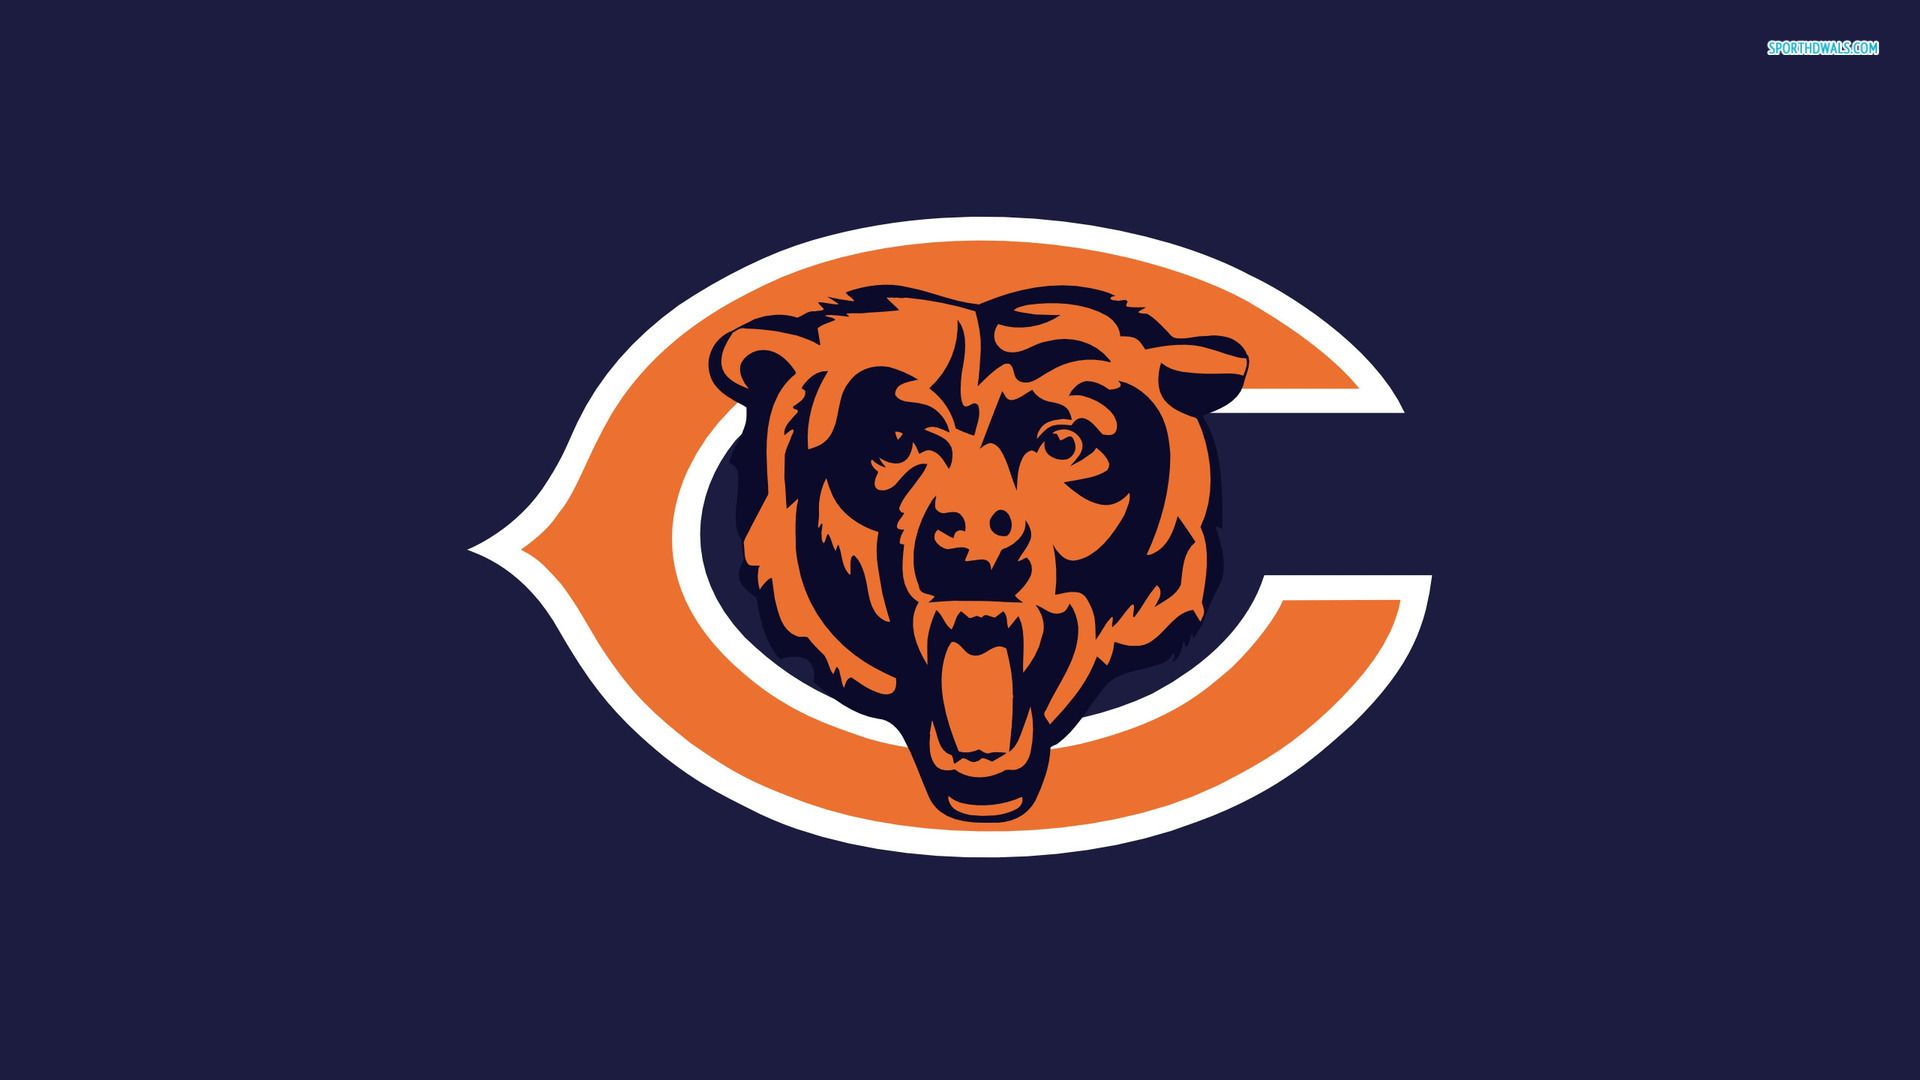 1920x1080 - Chicago Bears Wallpapers 10